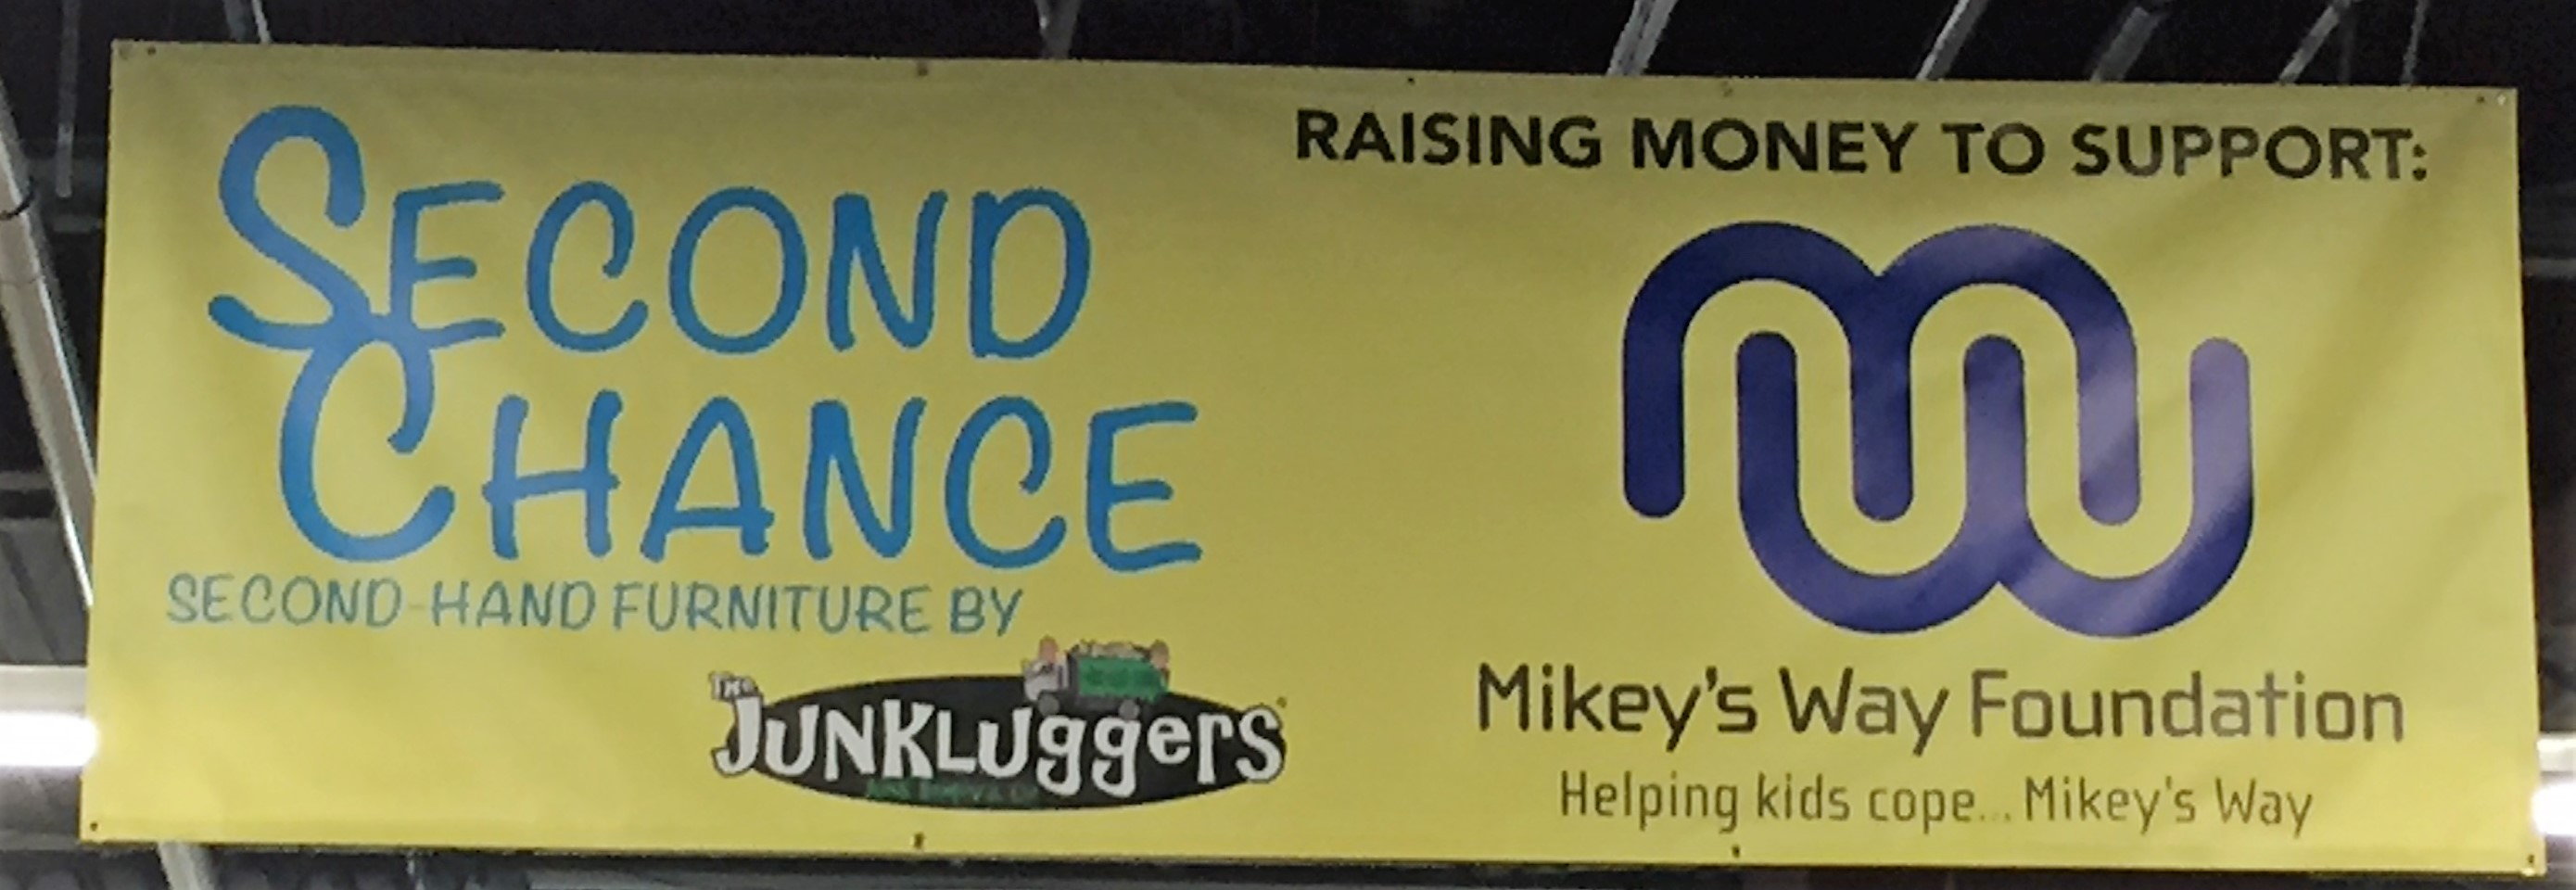 Second Chance by Junkluggers Banner